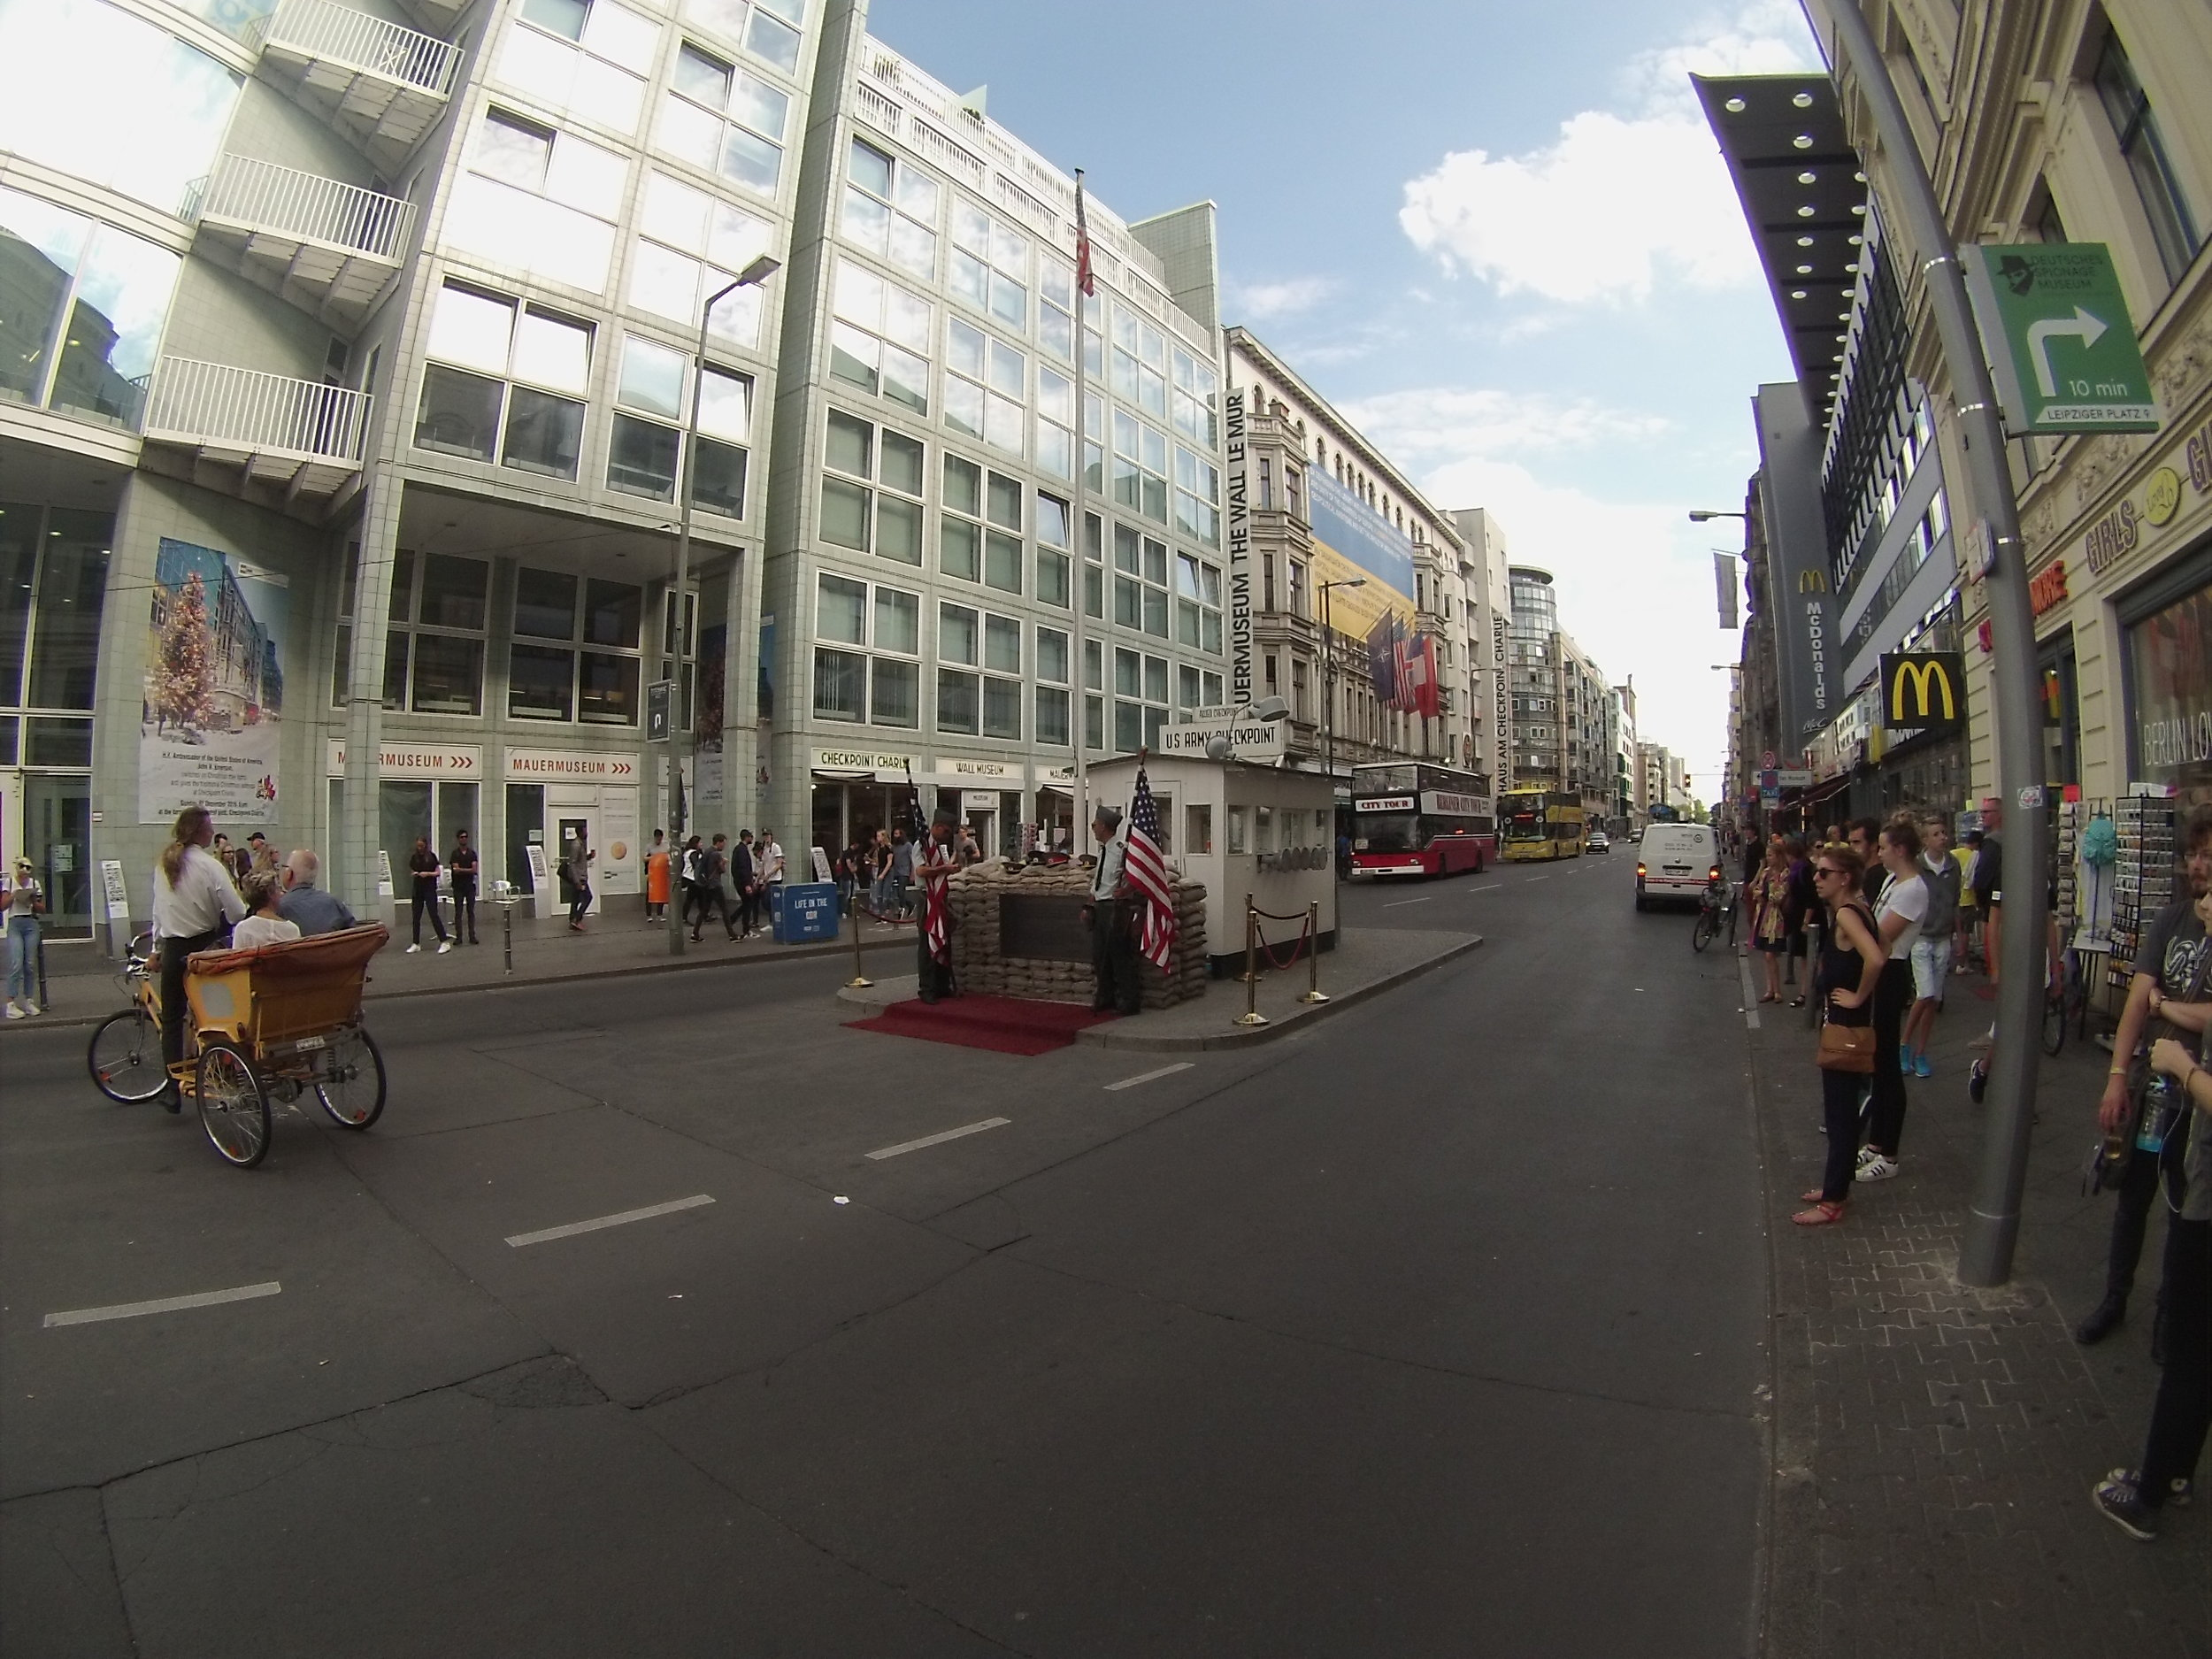 Surveying the scene at Checkpoint Charlie.